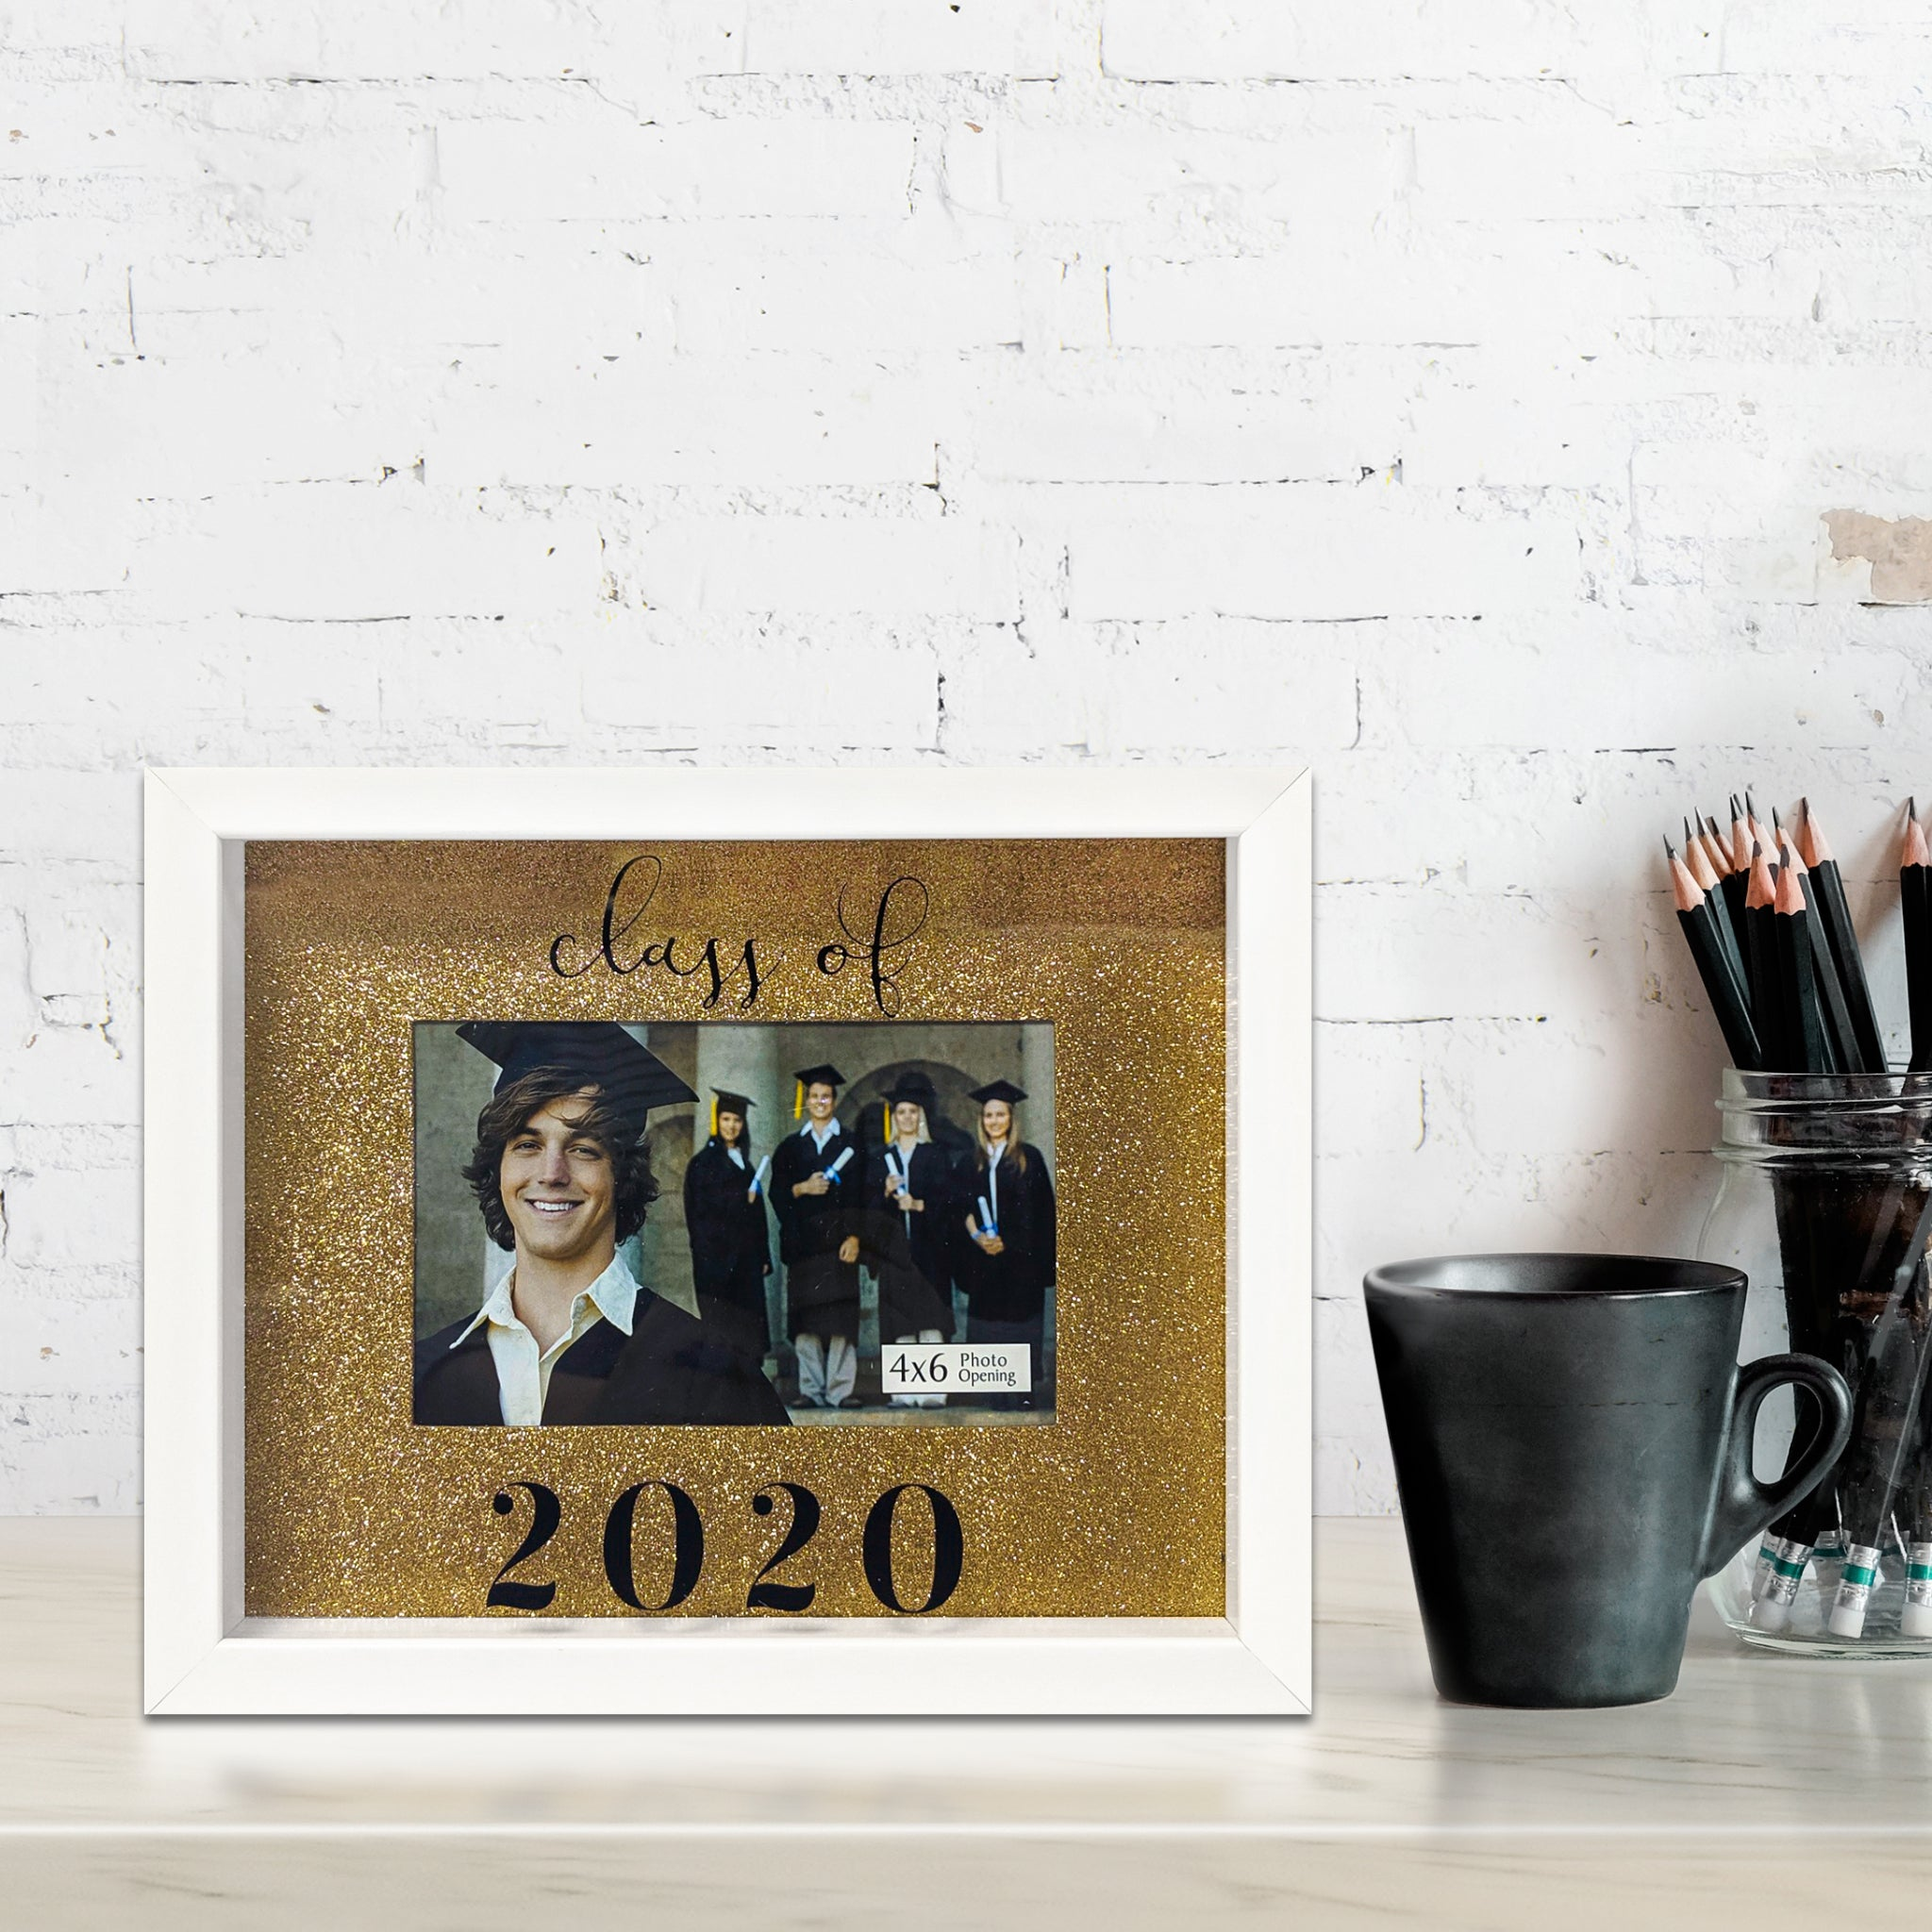 Rose Gold Background 4-inch by 6-inch Photo Opening Class of 2020 Graduation Picture Frame